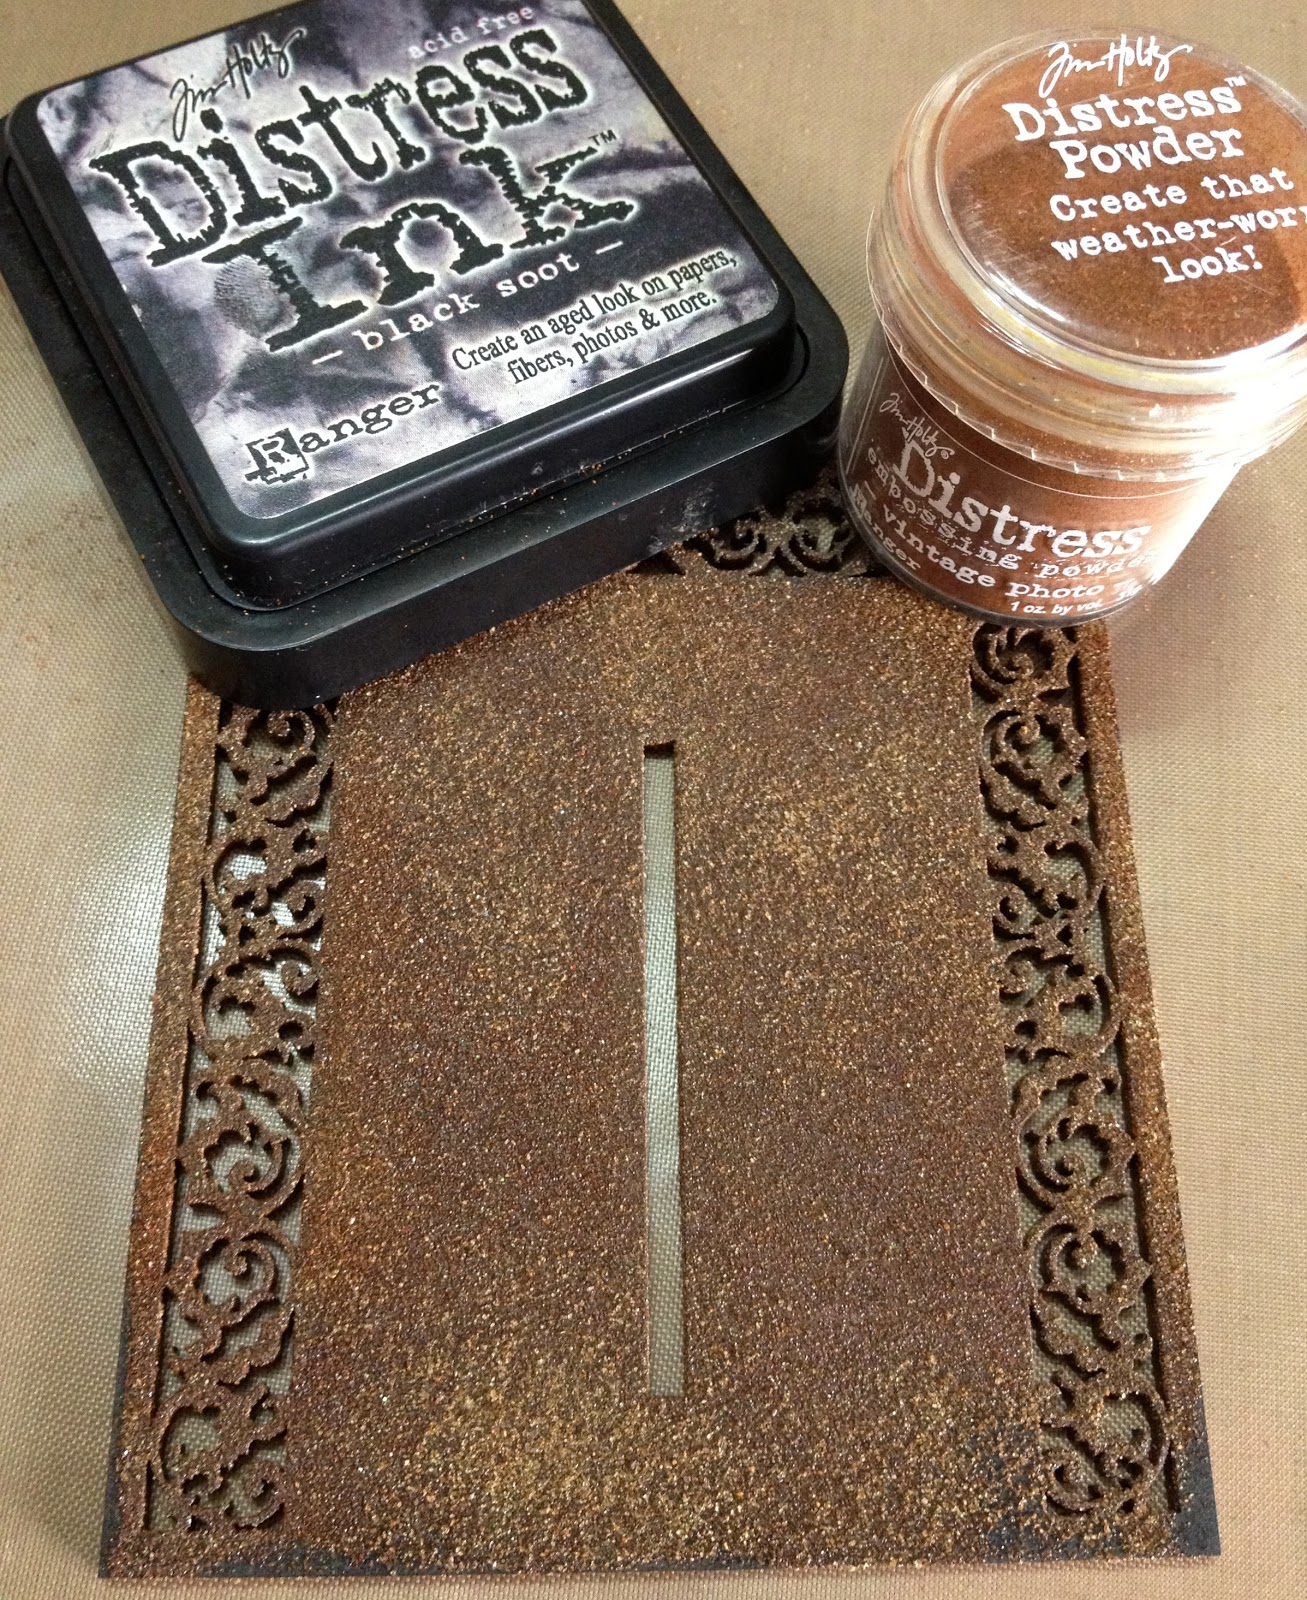 tracey shenton distress embossing powder